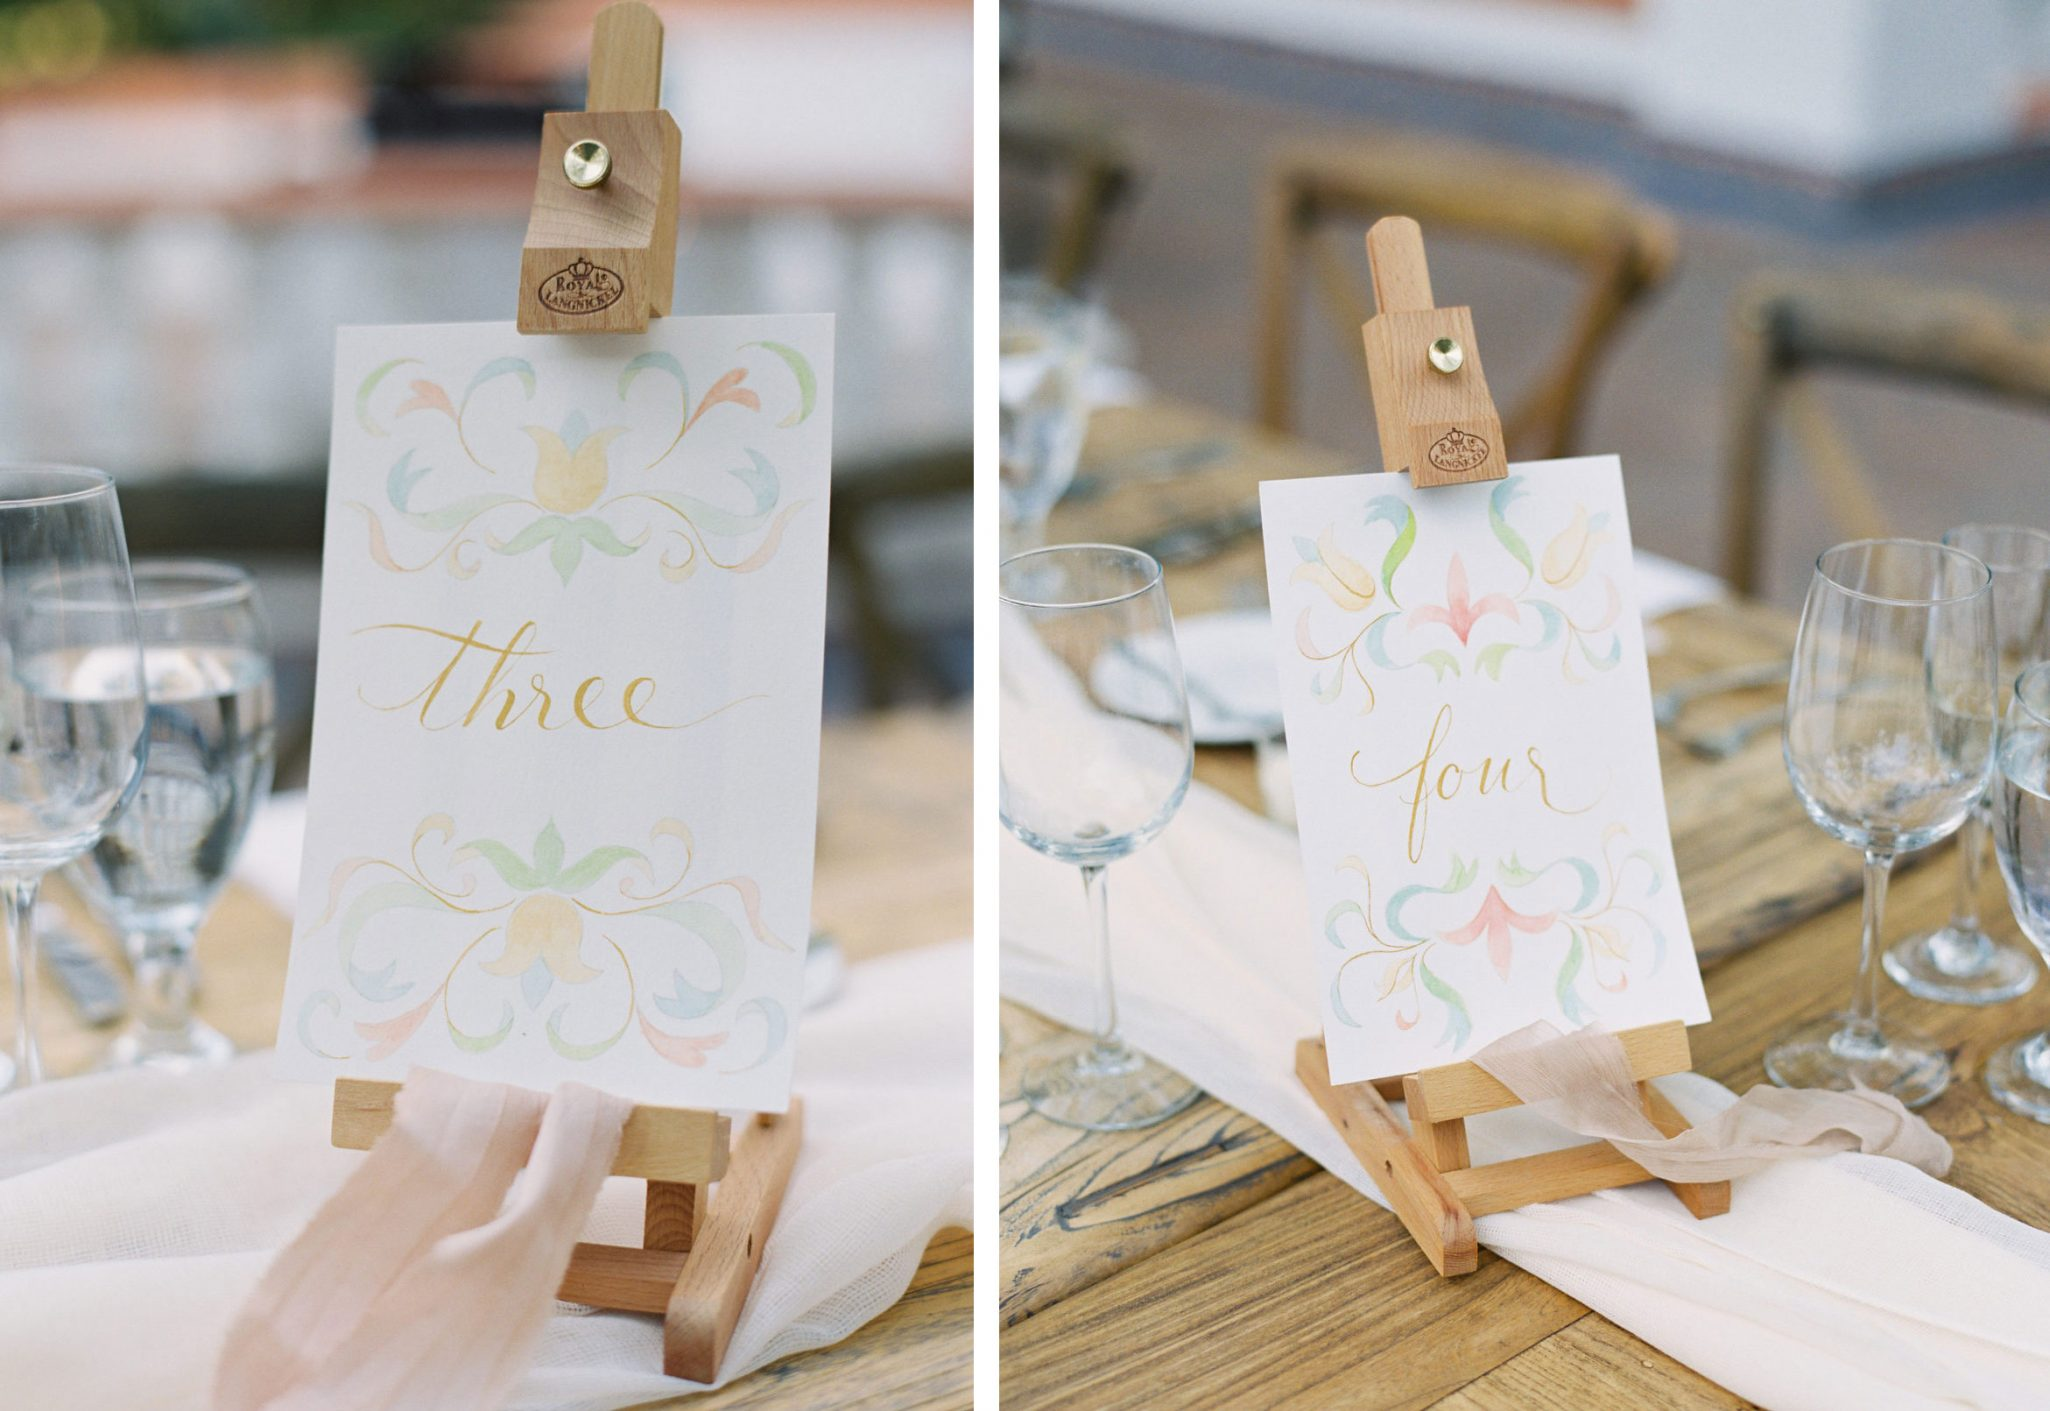 Tiny art easels hold handmade table numbers.